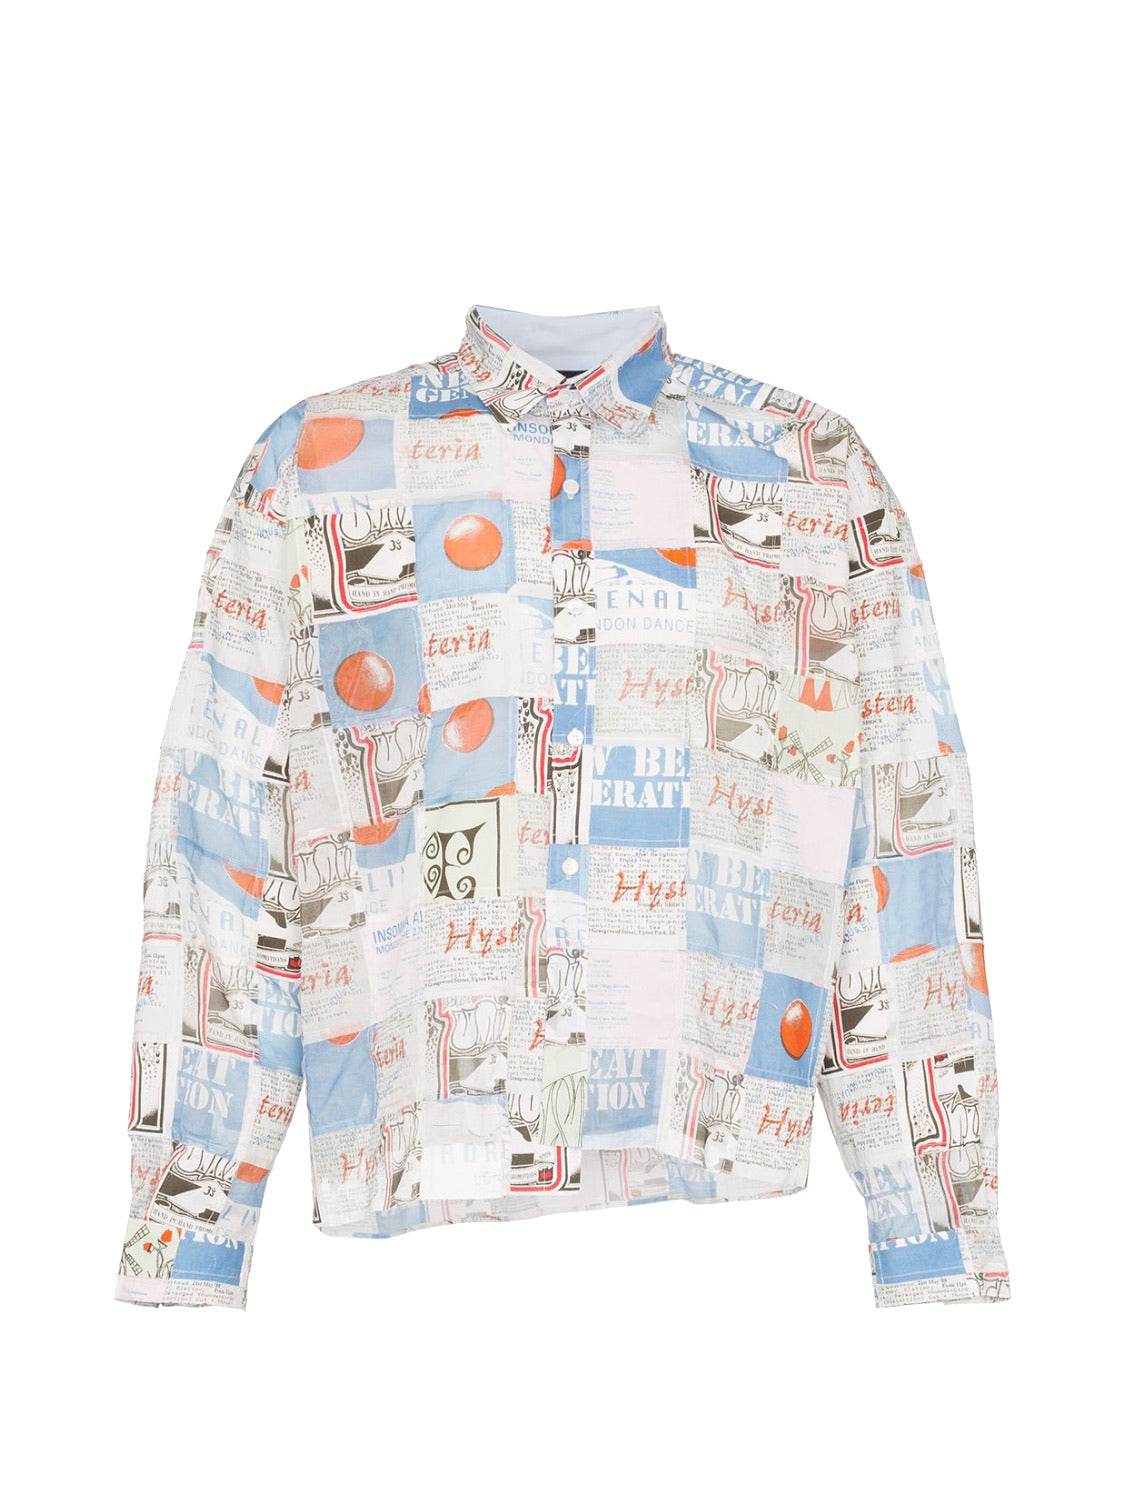 Men's Martine Rose button-up